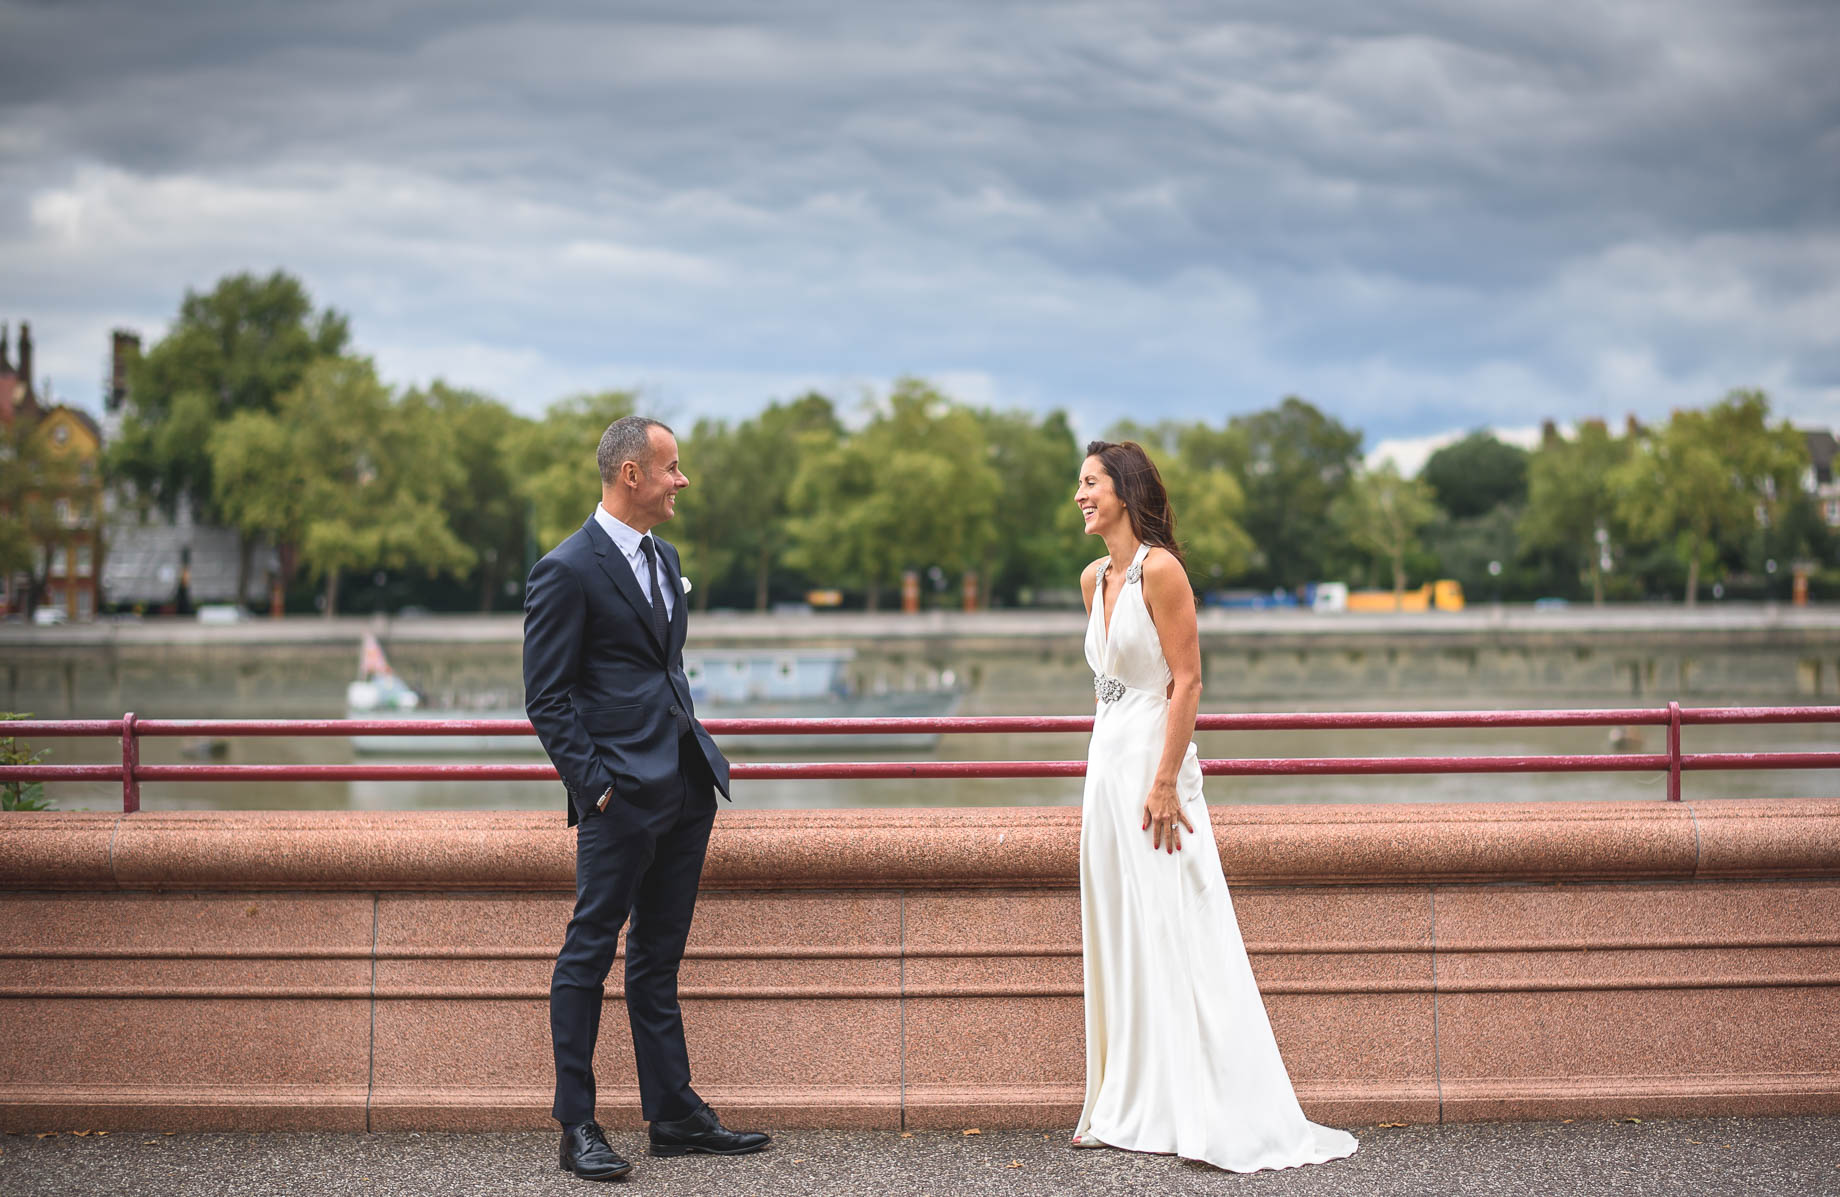 Chelsea and Mayfair wedding photography - Guy Collier - Vicki and Damien (90 of 126)